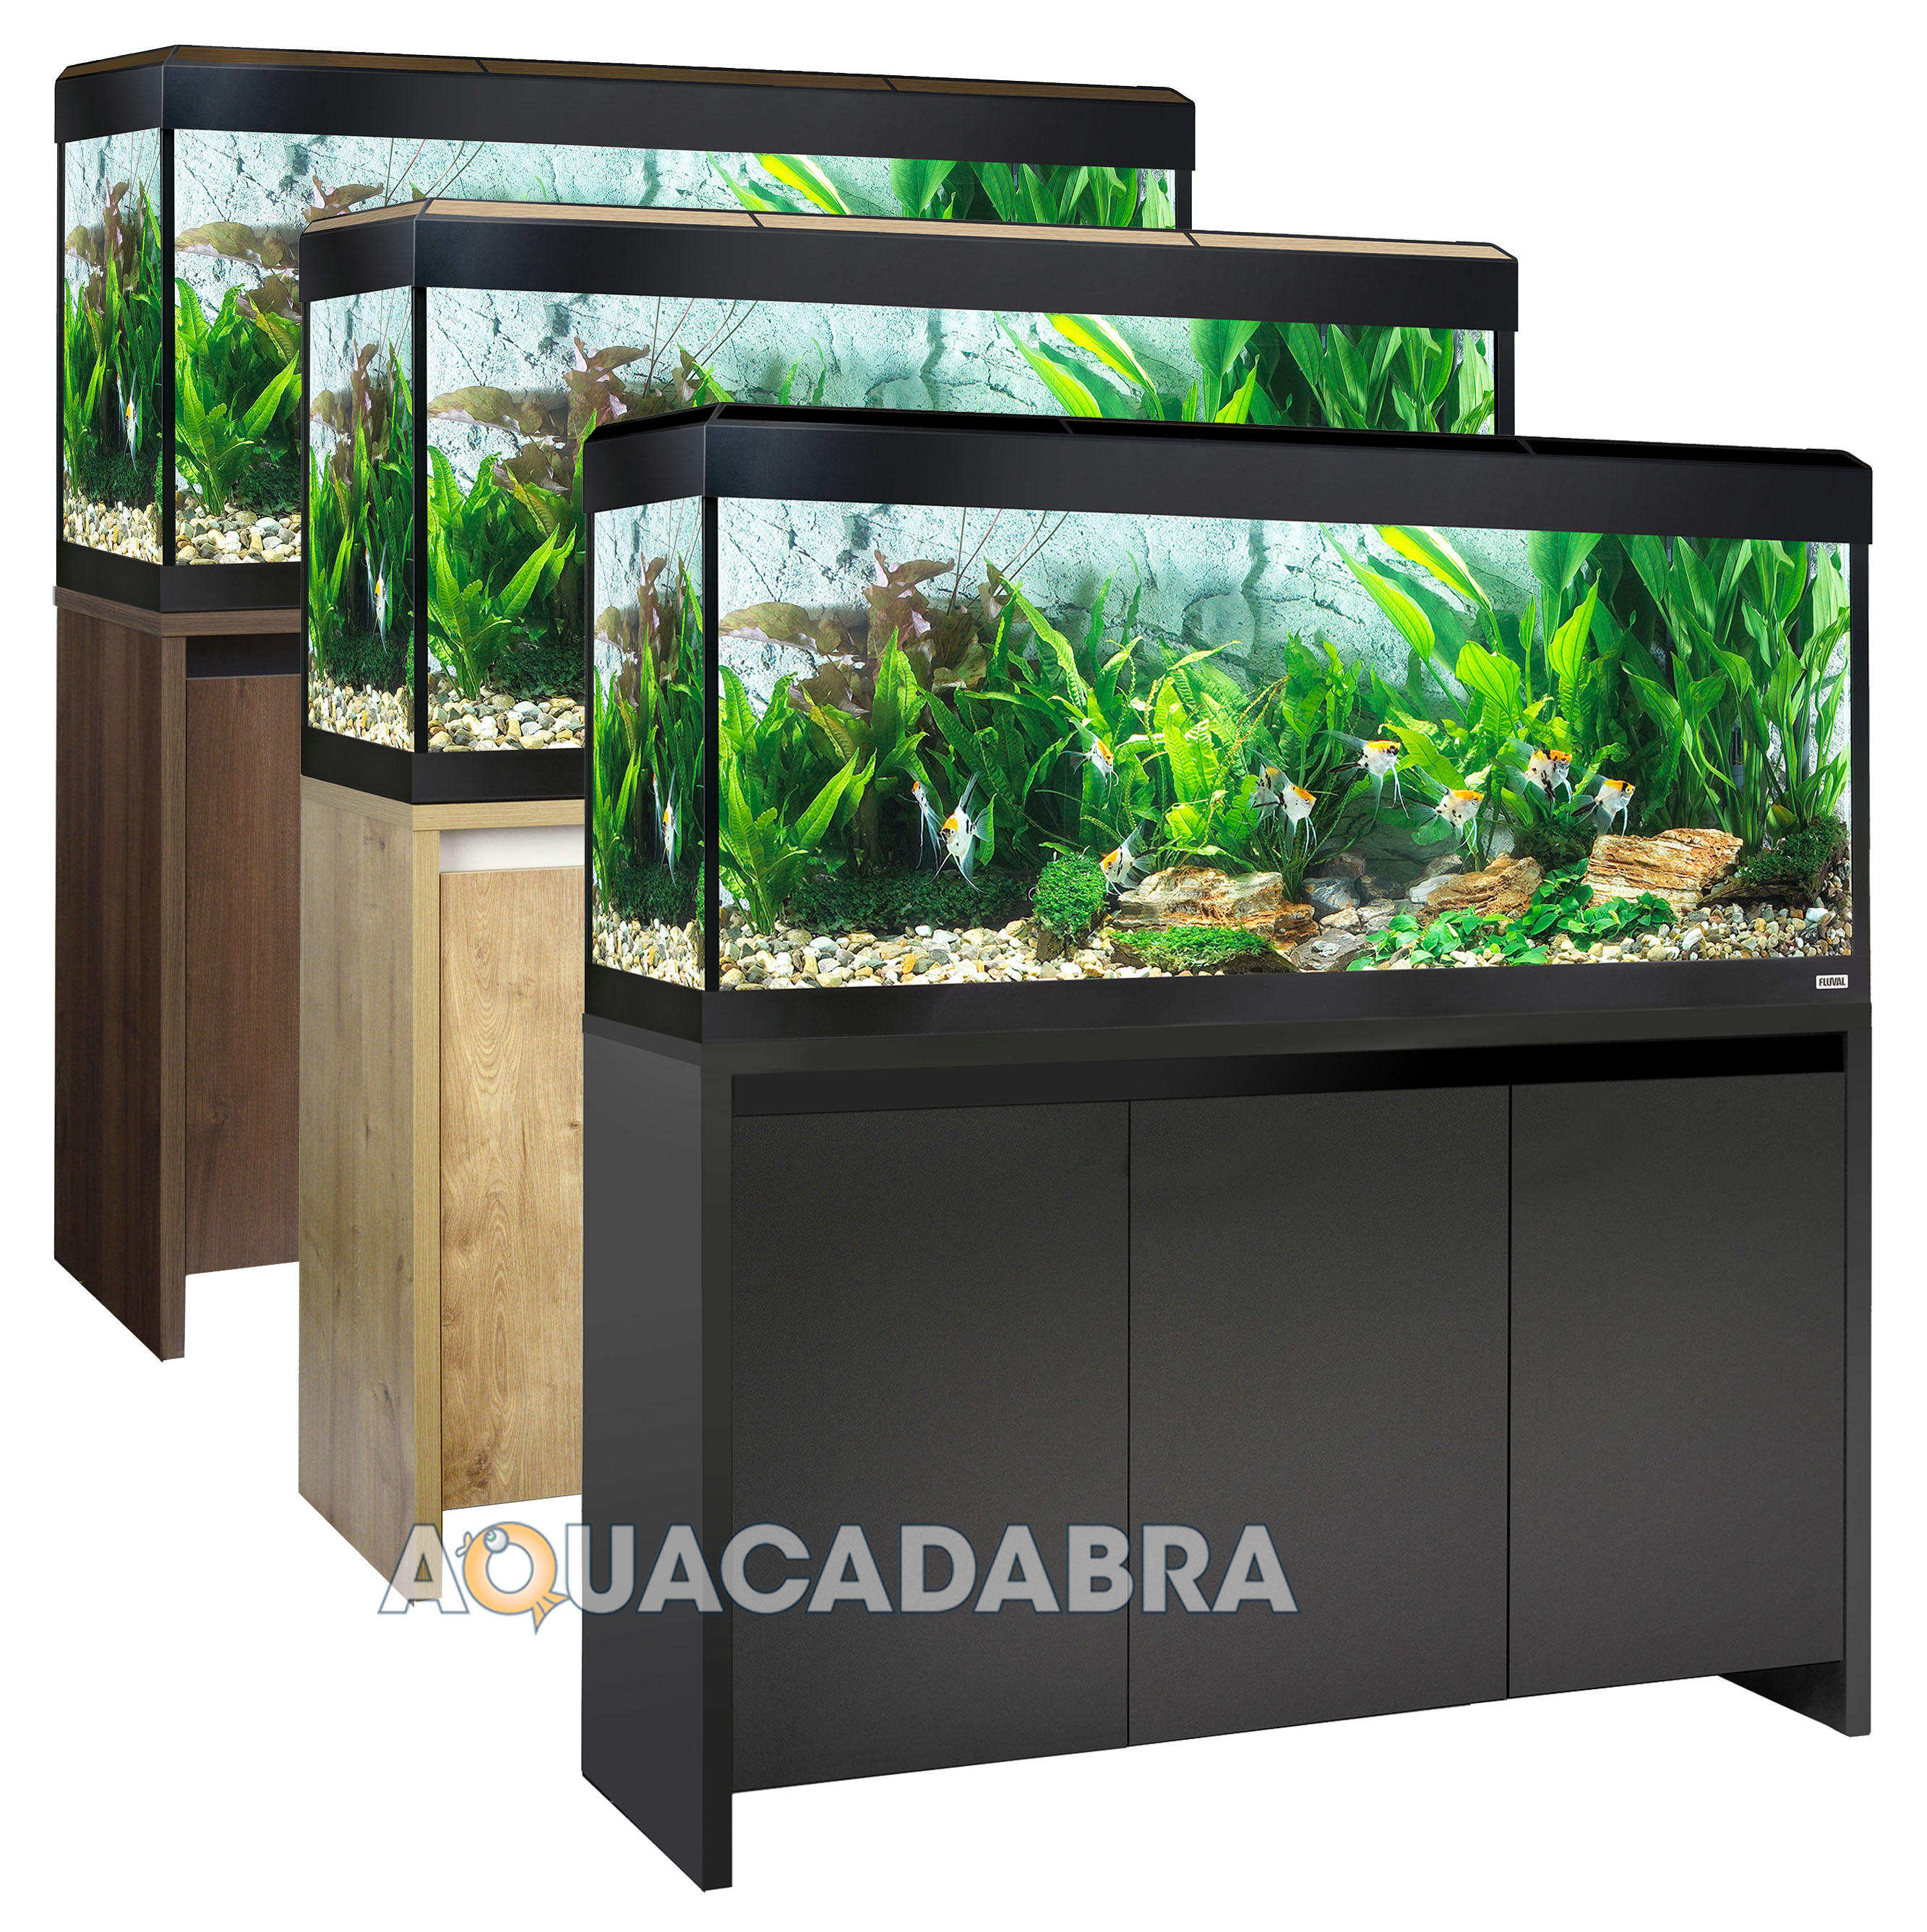 fluval roma led aquariums 90 125 200 240l oak walnut black new cabinet fish tank ebay. Black Bedroom Furniture Sets. Home Design Ideas